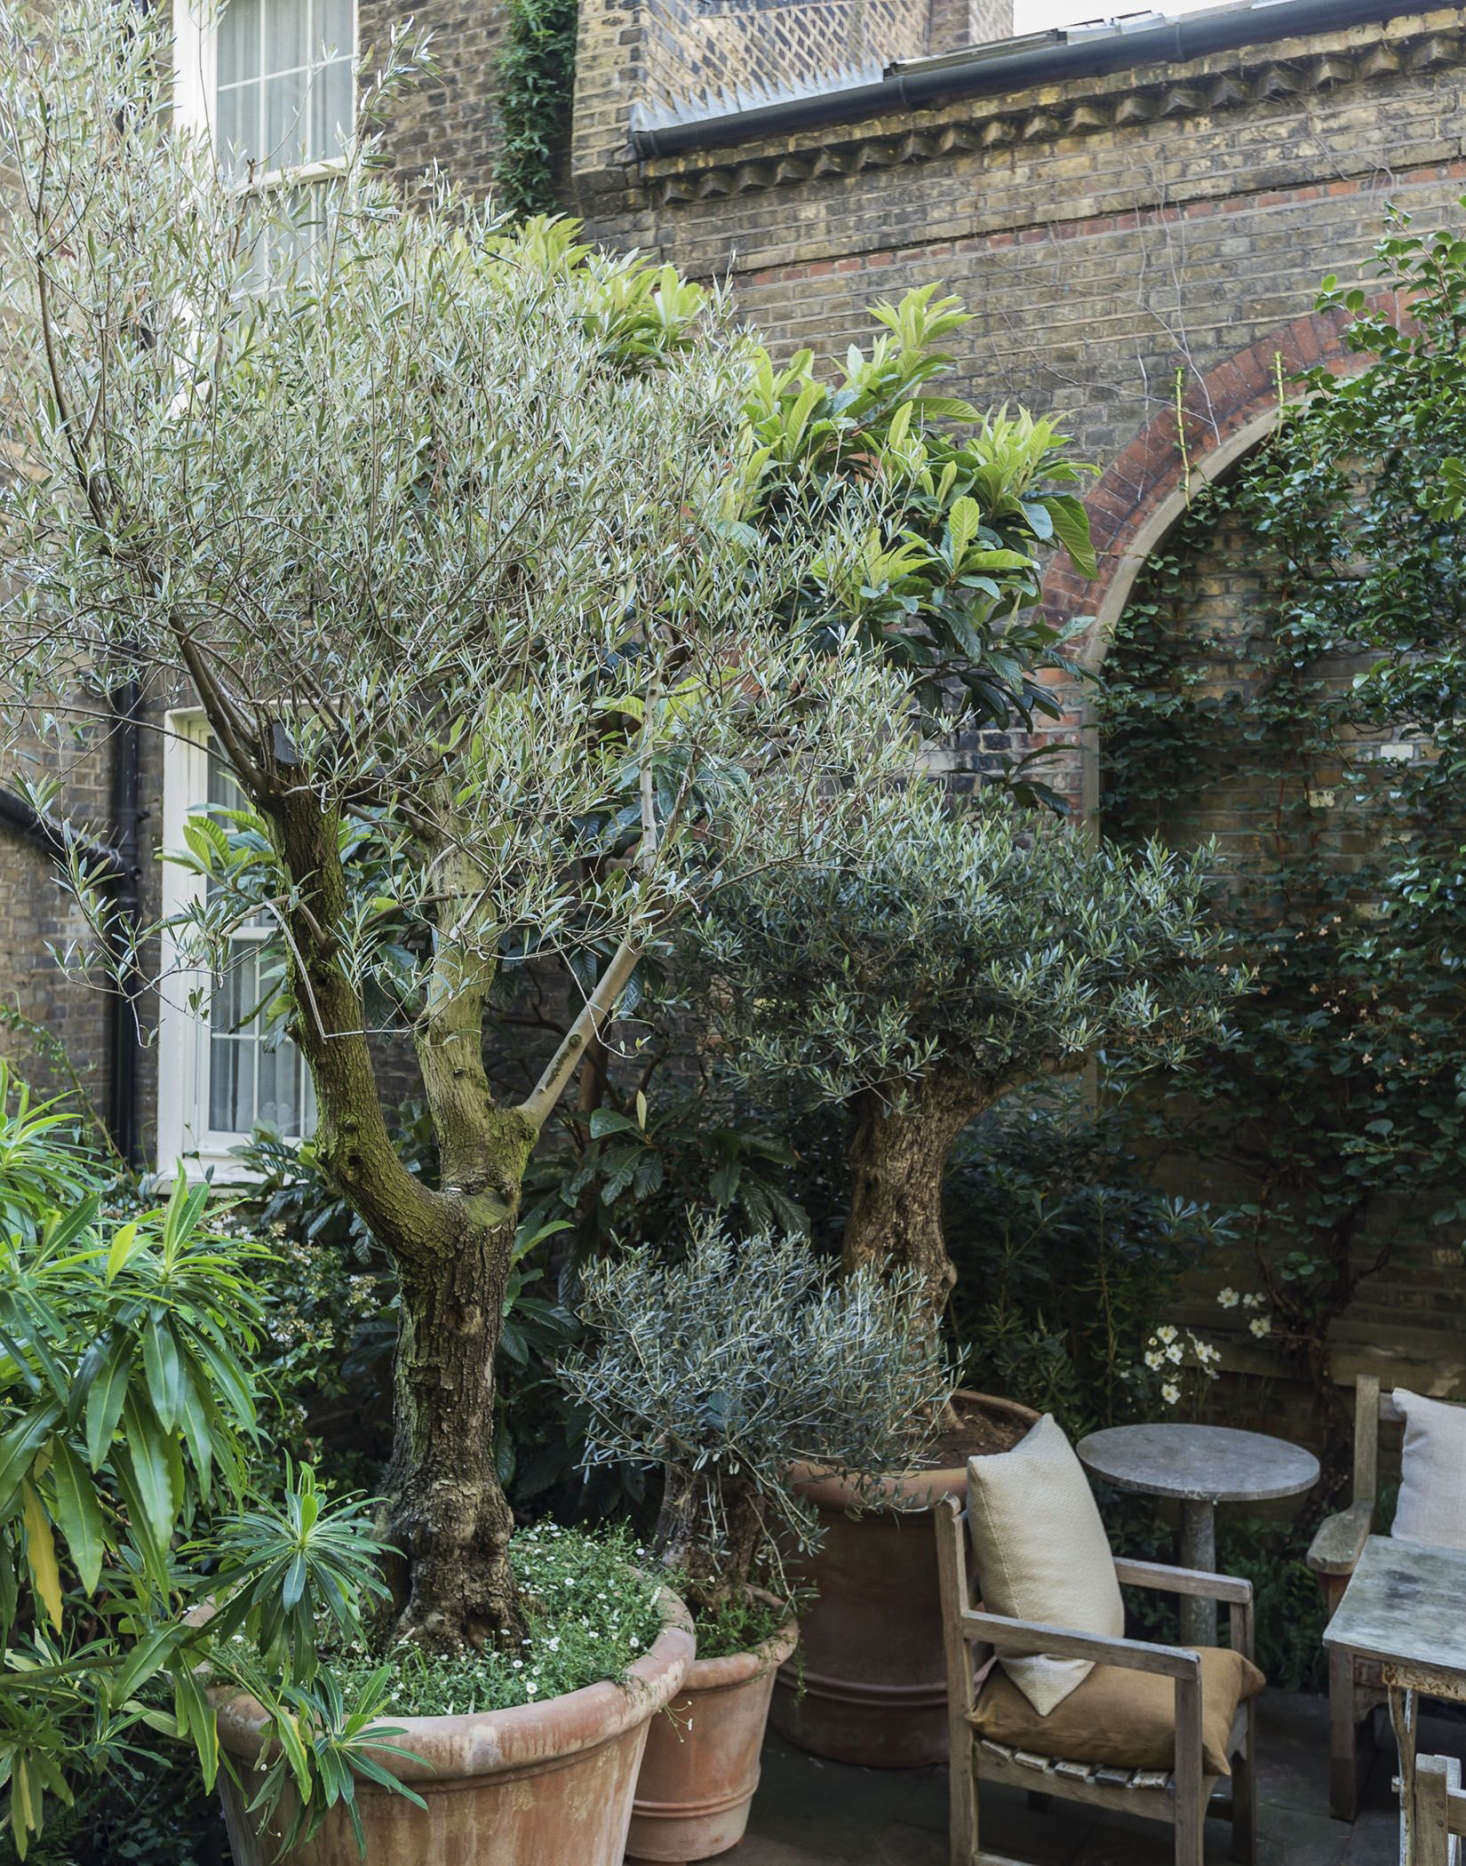 Against the brick wall, Tom planted camellias, southern magnolia, and evergreen loquat (Eriobotrya) trees, to give solid texture and enclose the space with greenery.